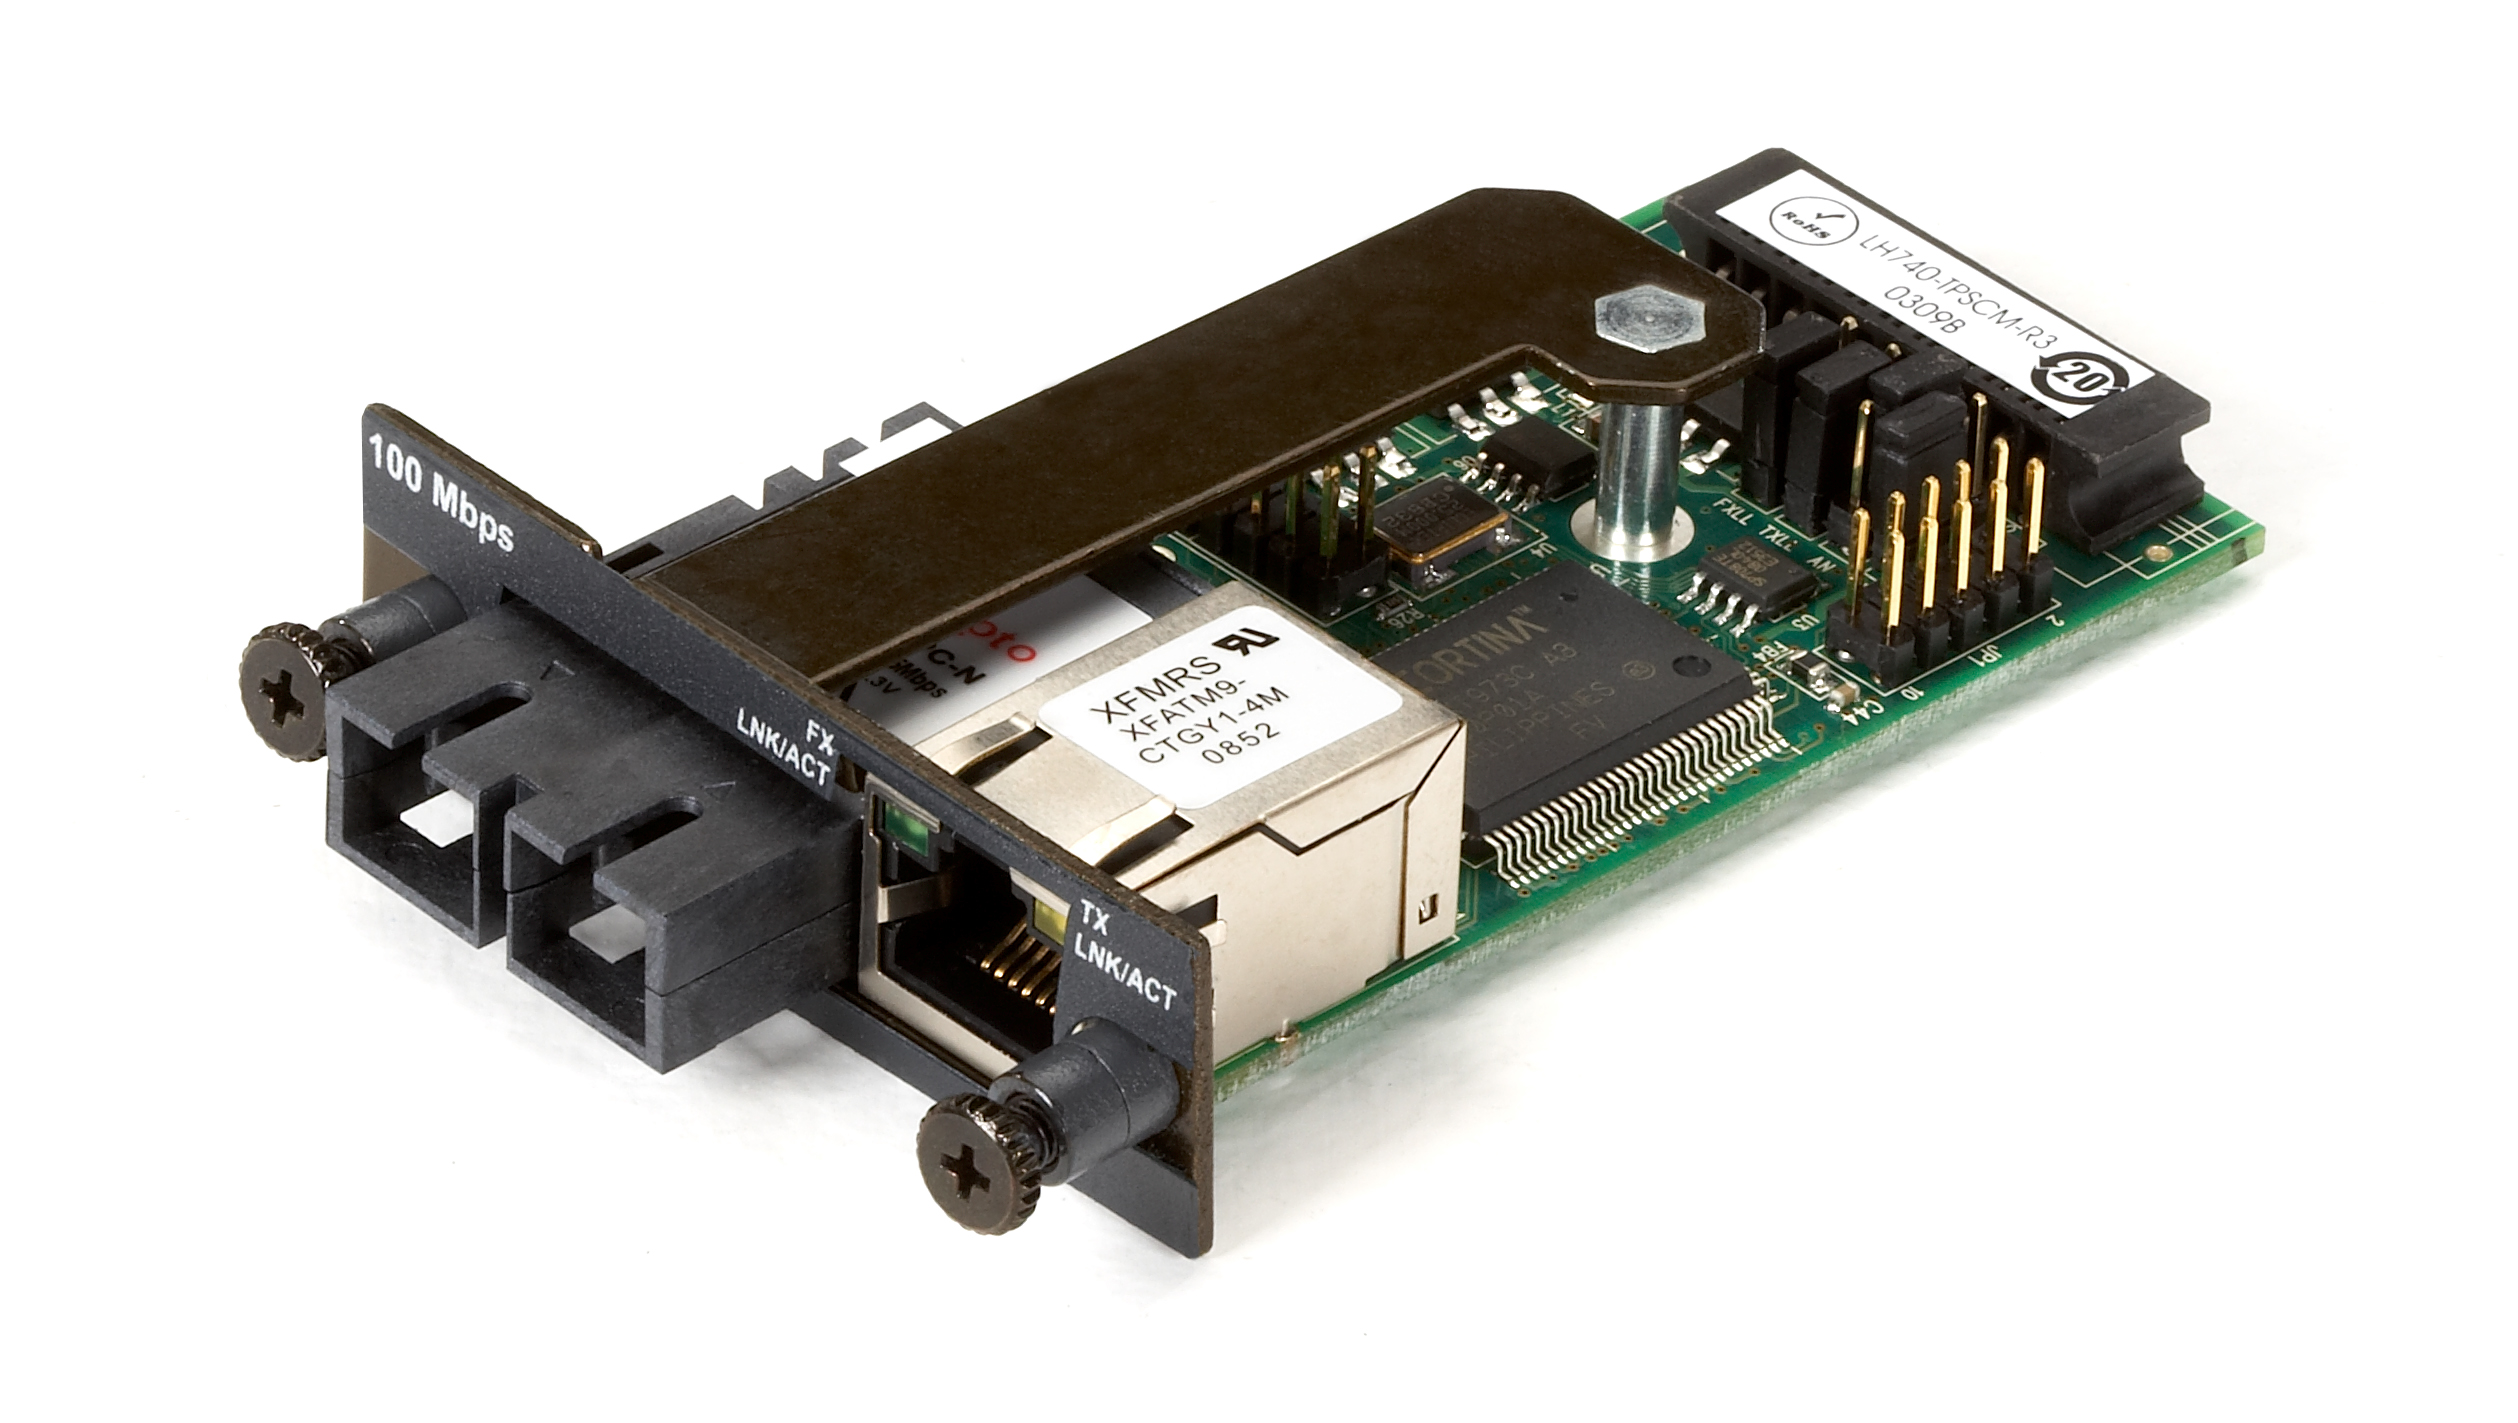 Media Converter Fast Ethernet Multimode 1310nm 2km Sc Black Box Voice Data Combination Module With Switch Additional Product Image